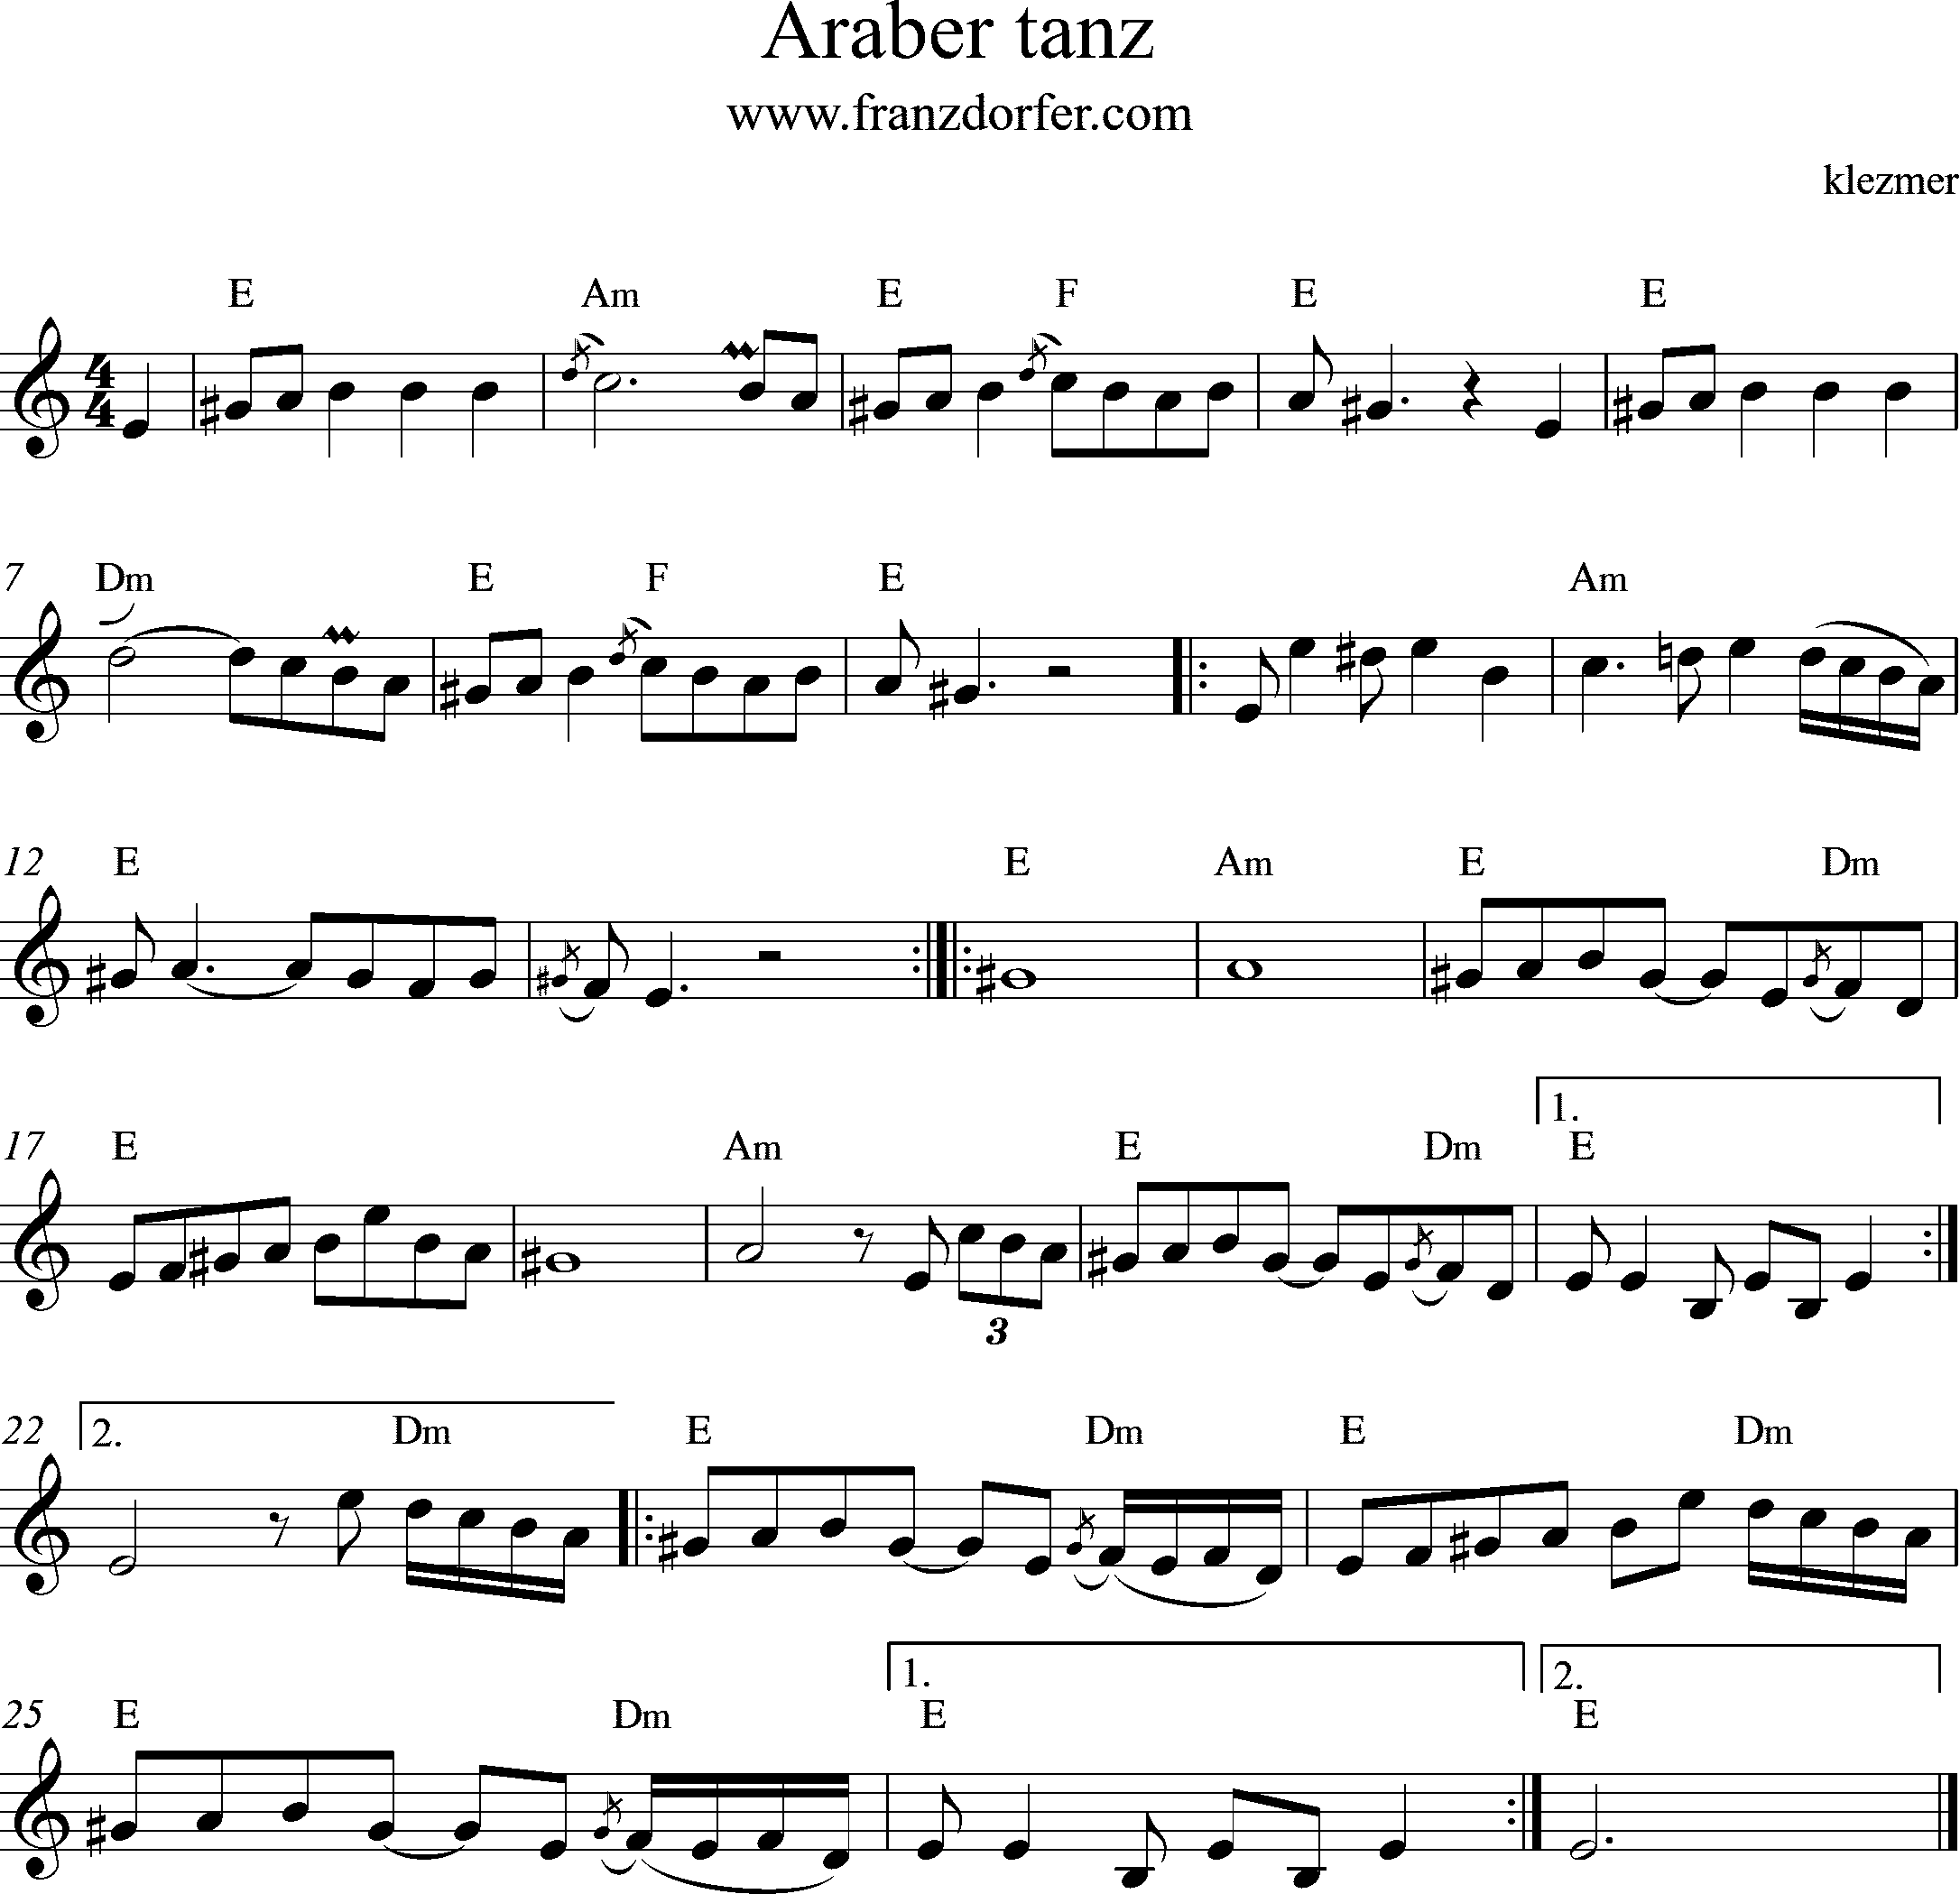 sheetmusic Araber tanz